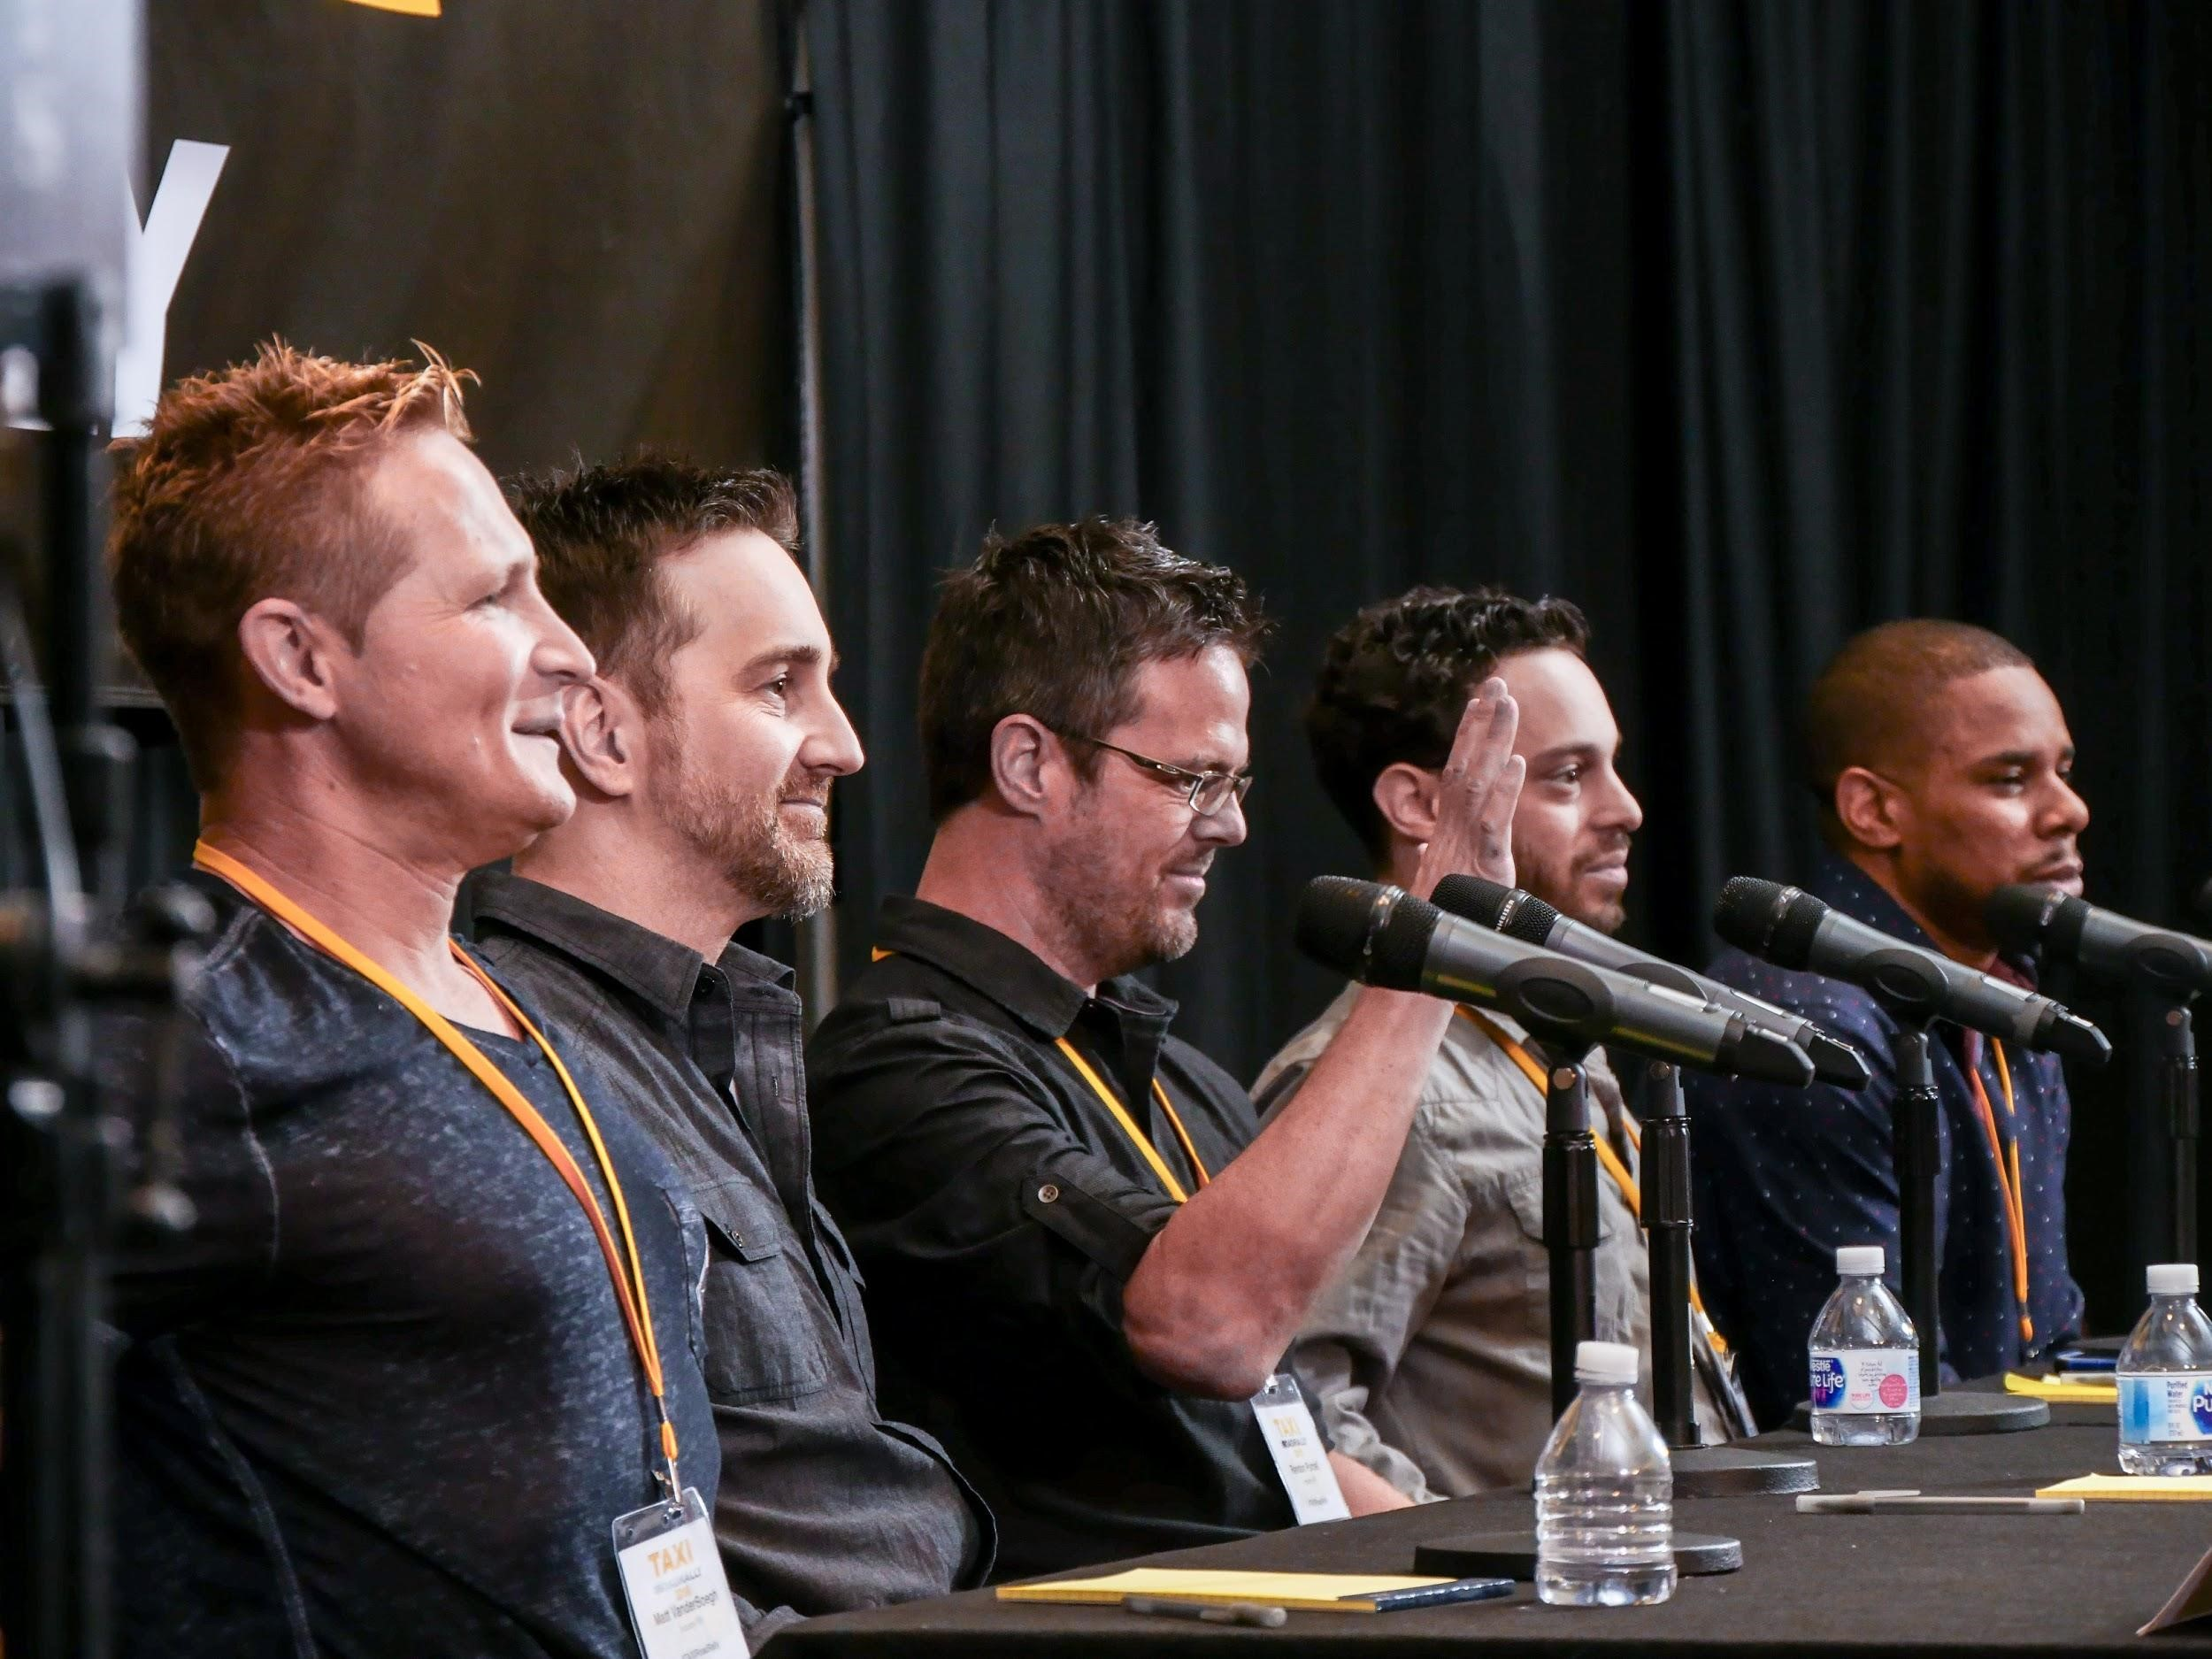 Successful TAXI members Matthew Vander Boegh, Keith LuBrant, Randon Purcell, Marcus Cohen, and Terrell Burt told their fellow members how they find the time to create tons of new music despite having families, jobs, and lots of other 'adult responsibilities.'